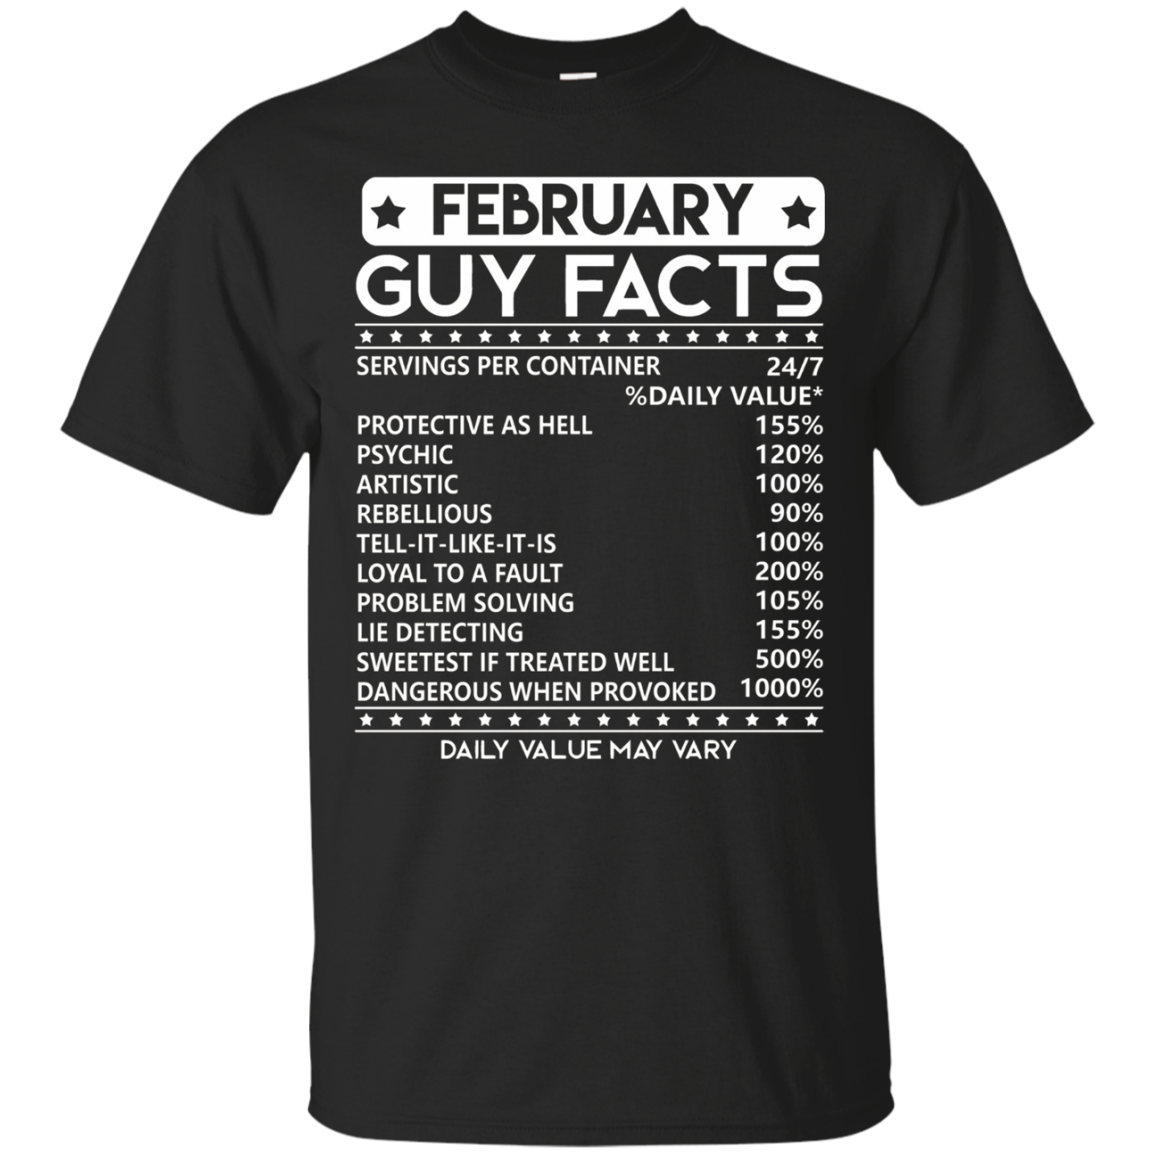 Mens February Guy Facts T-shirt